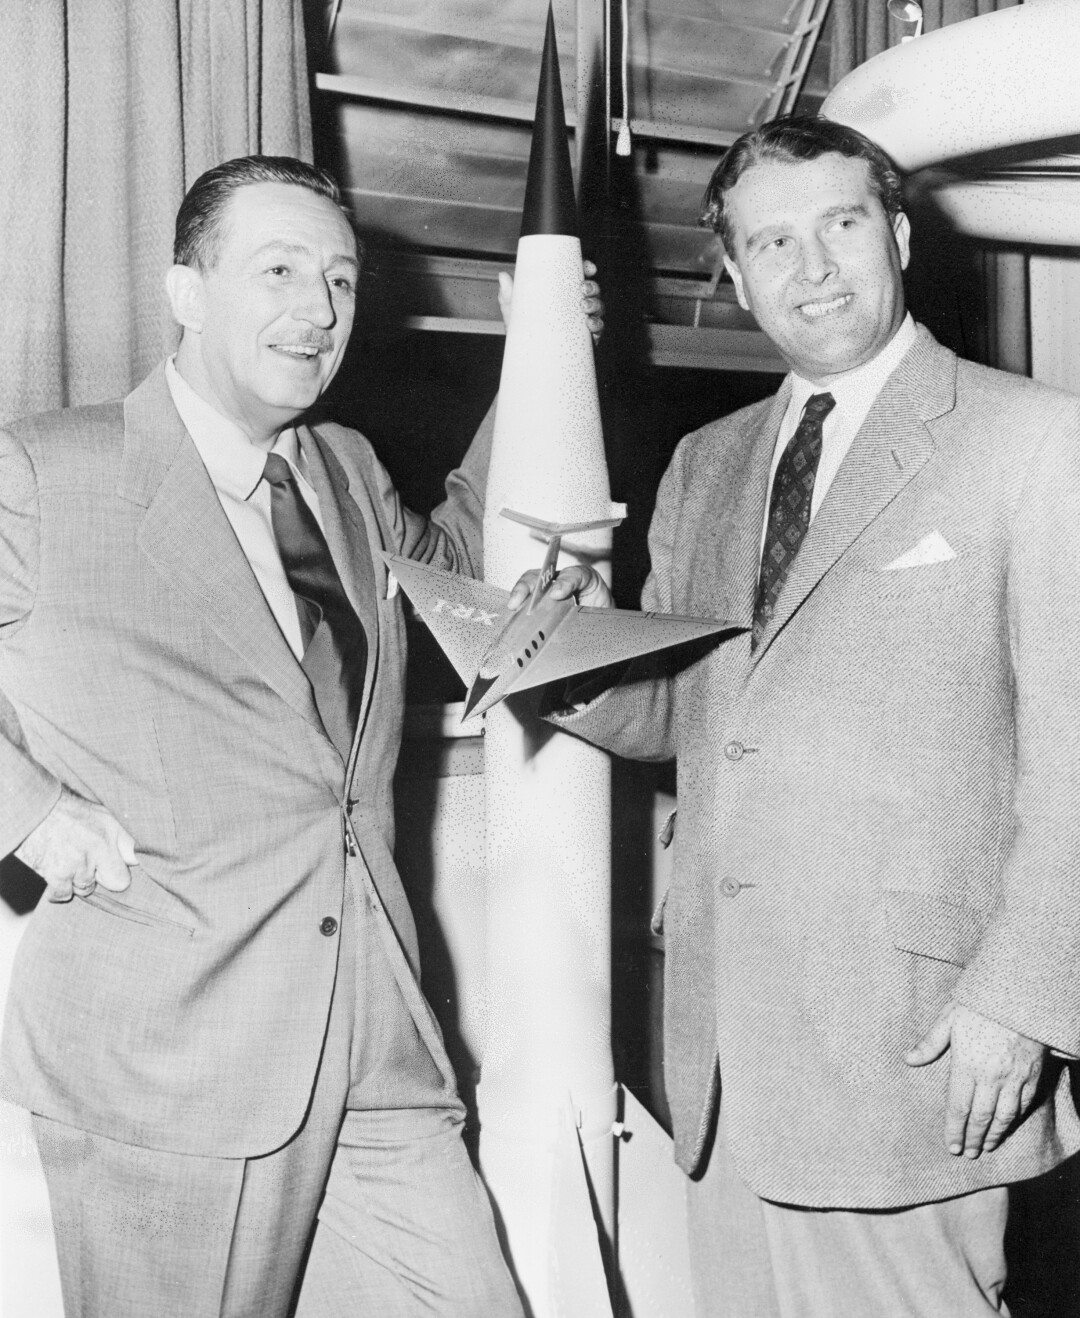 Marshall Center Director Dr. Wernher Von Braun with Walt Disney